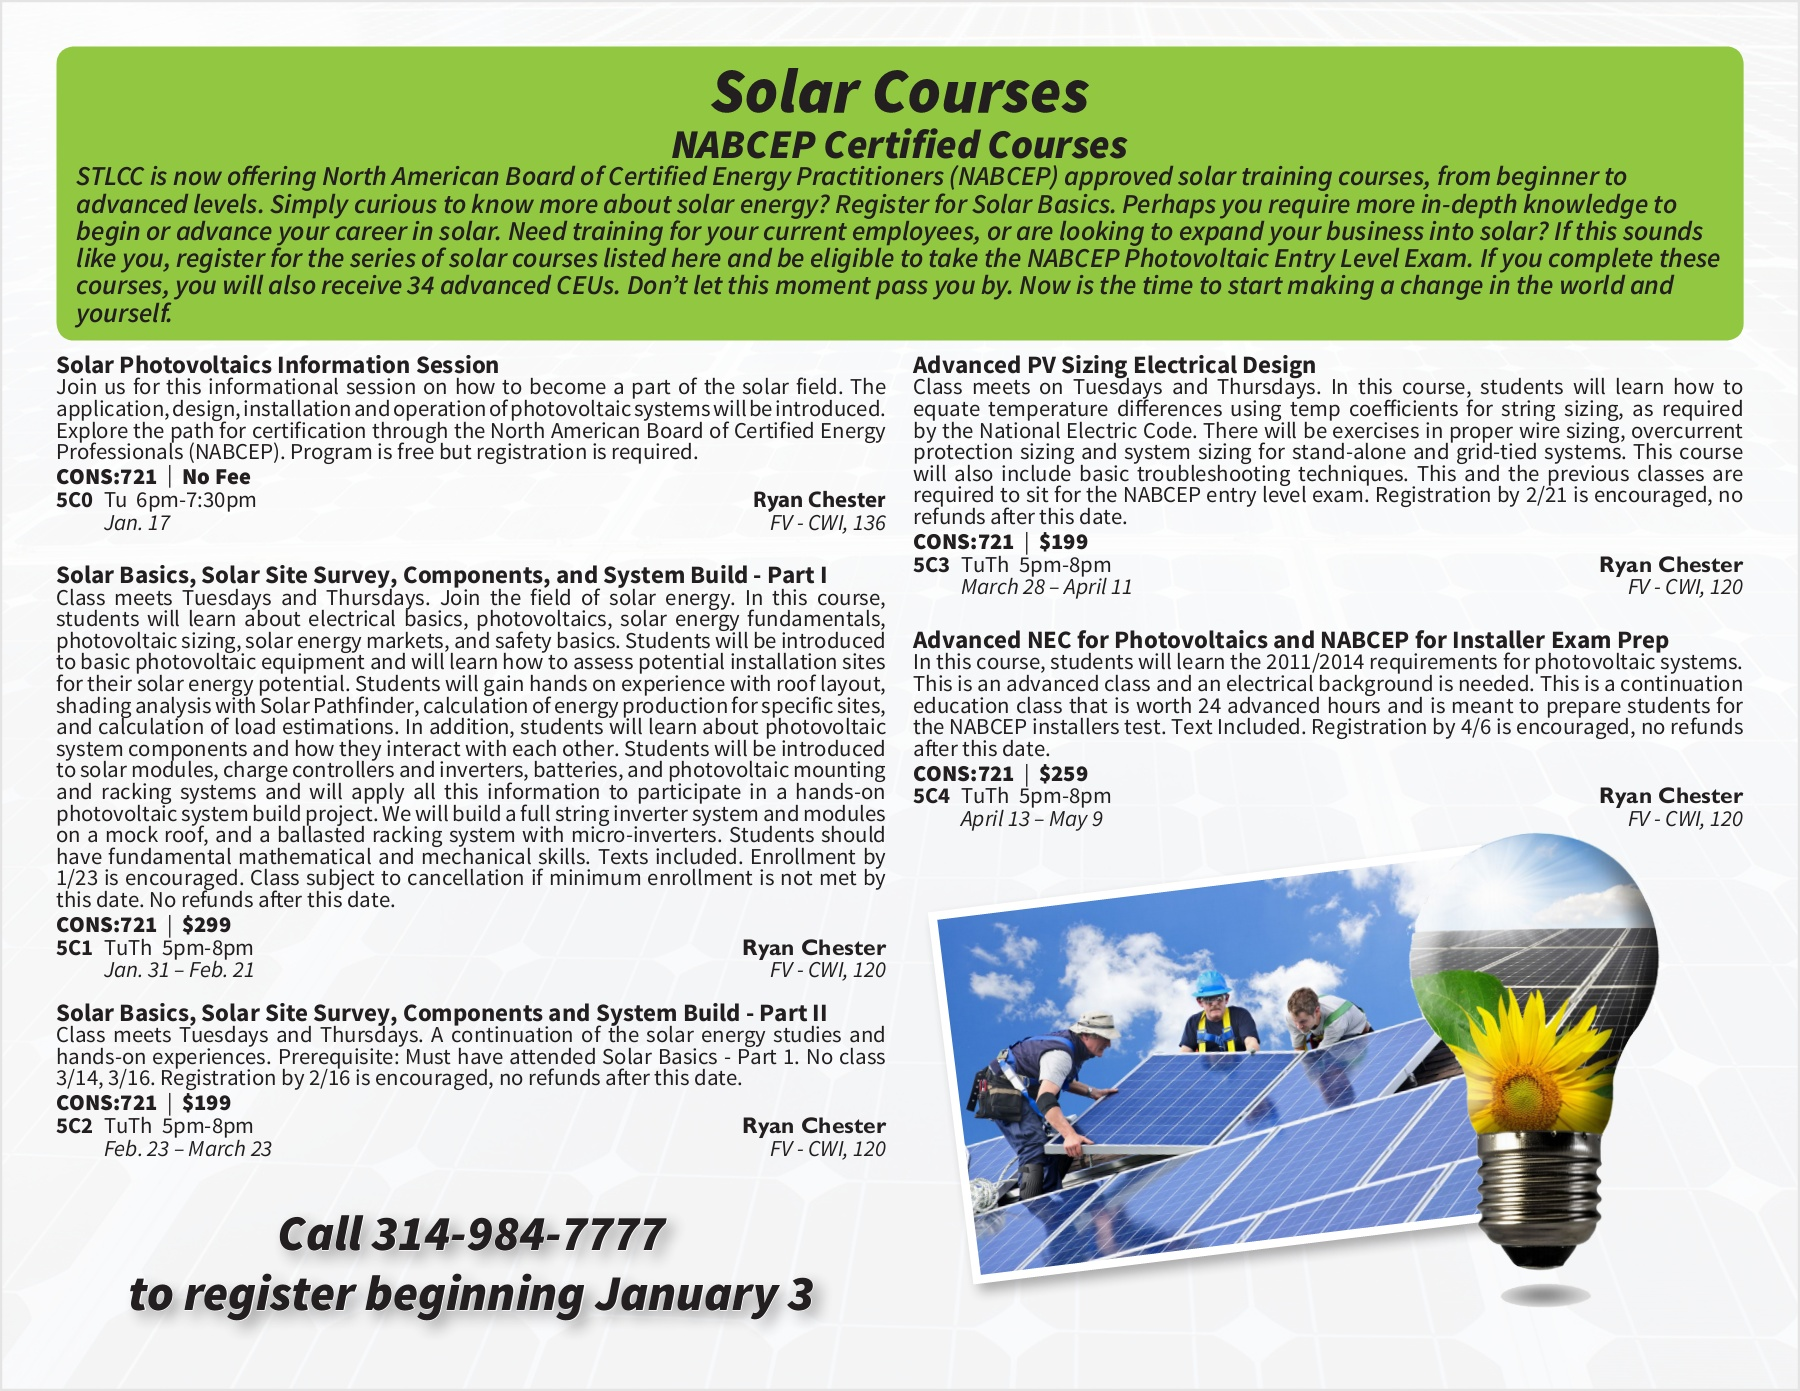 Timothy Gallo-Spring 2017 NABCEP Certified Solar Classes